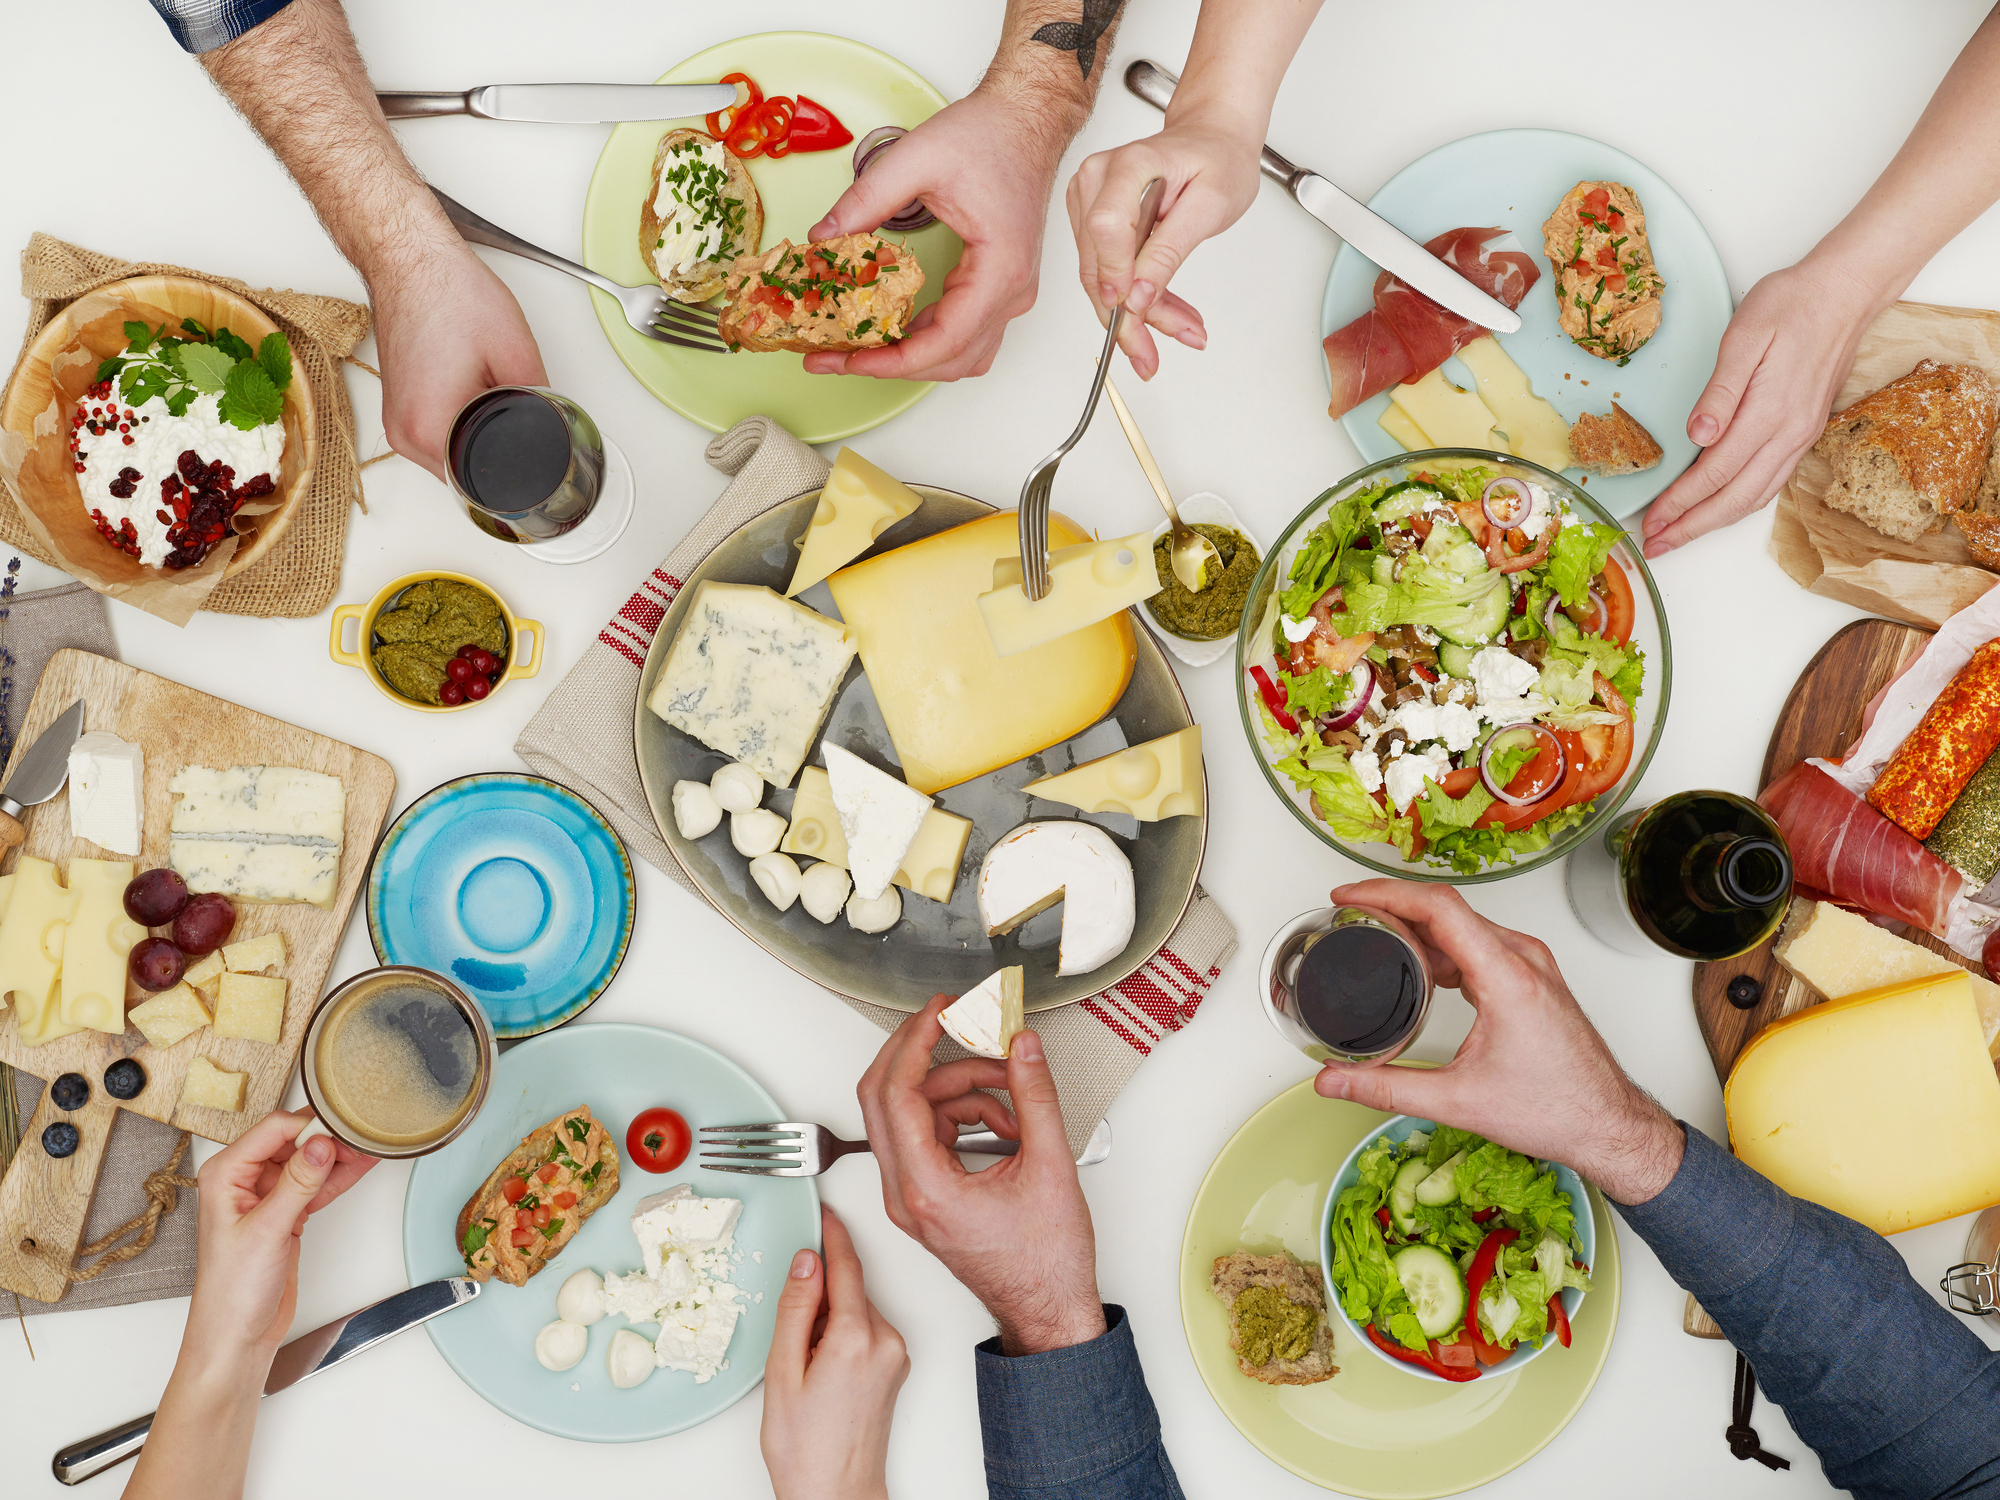 View from above the table of people eating (Thinkstock/PA)